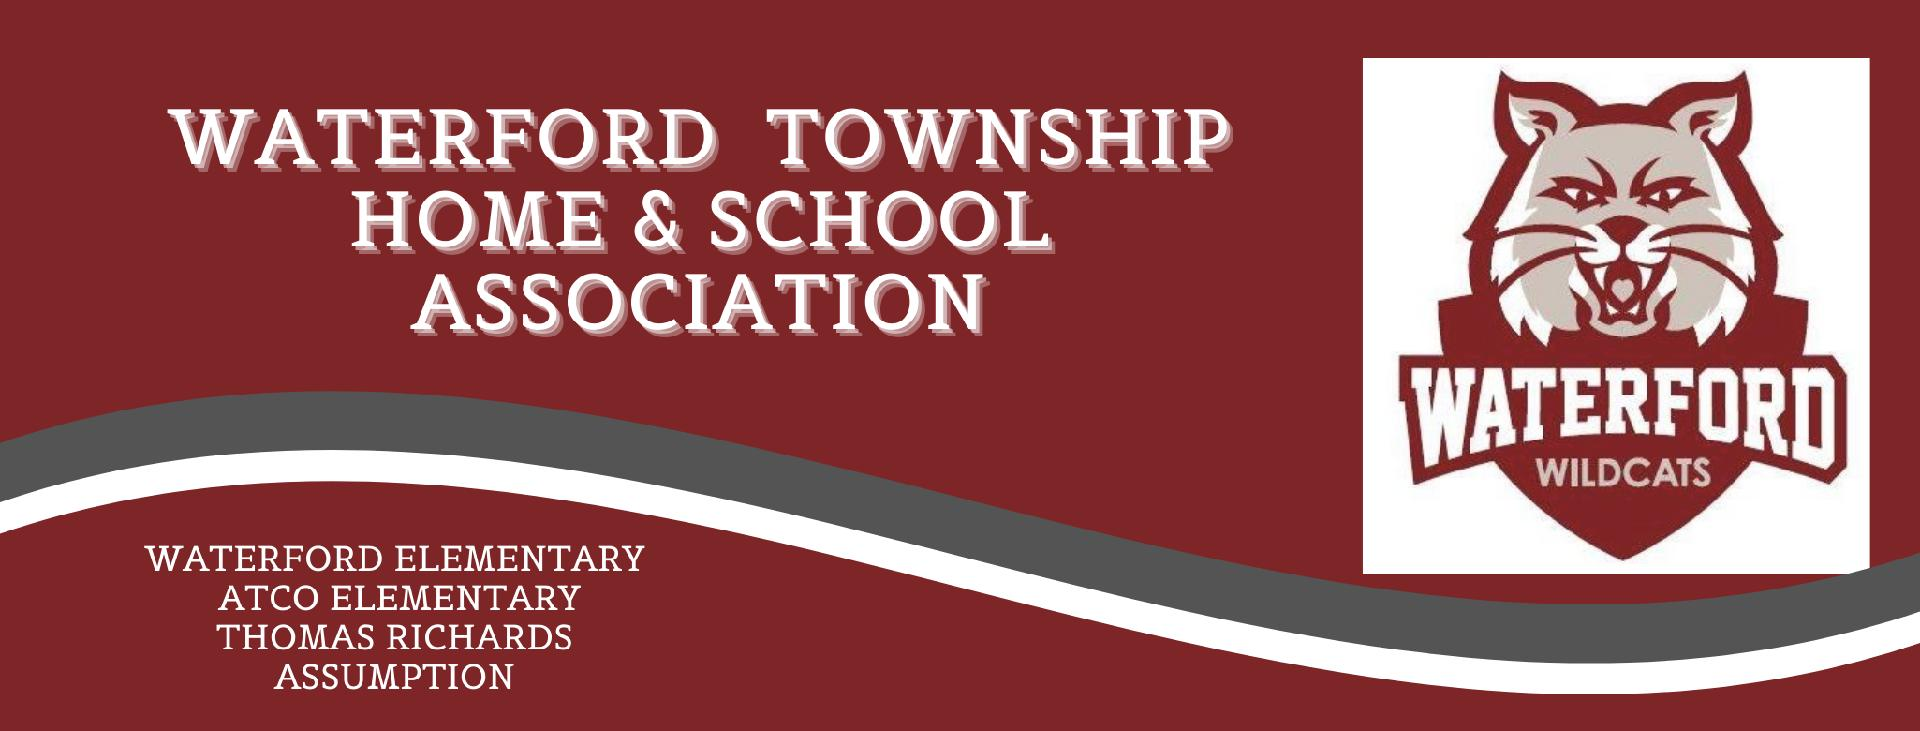 Waterford Township HSA